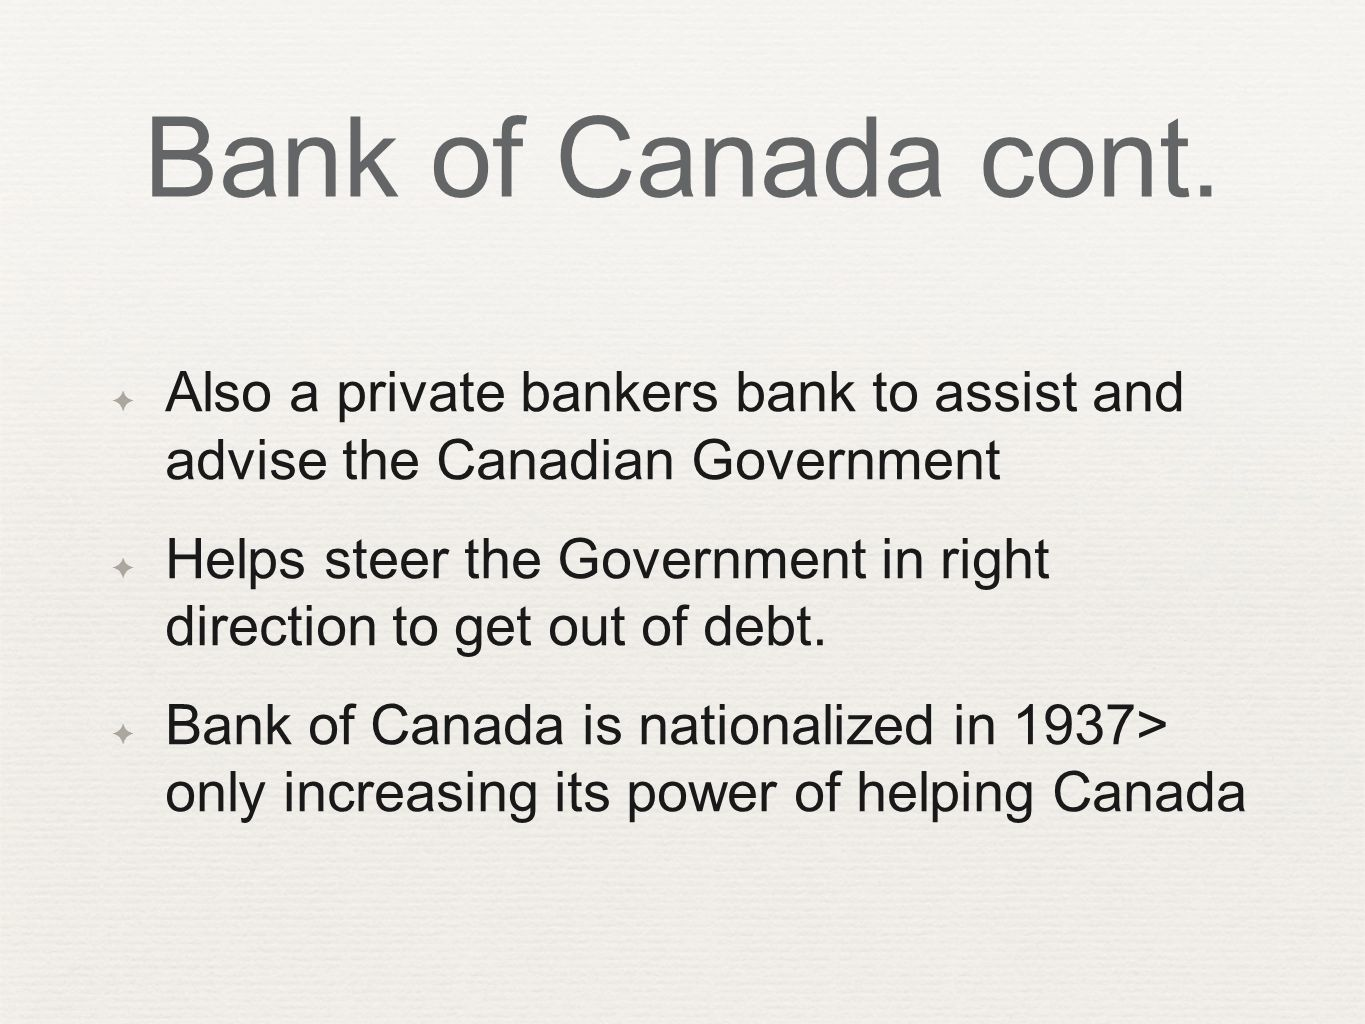 Bank of Canada cont.